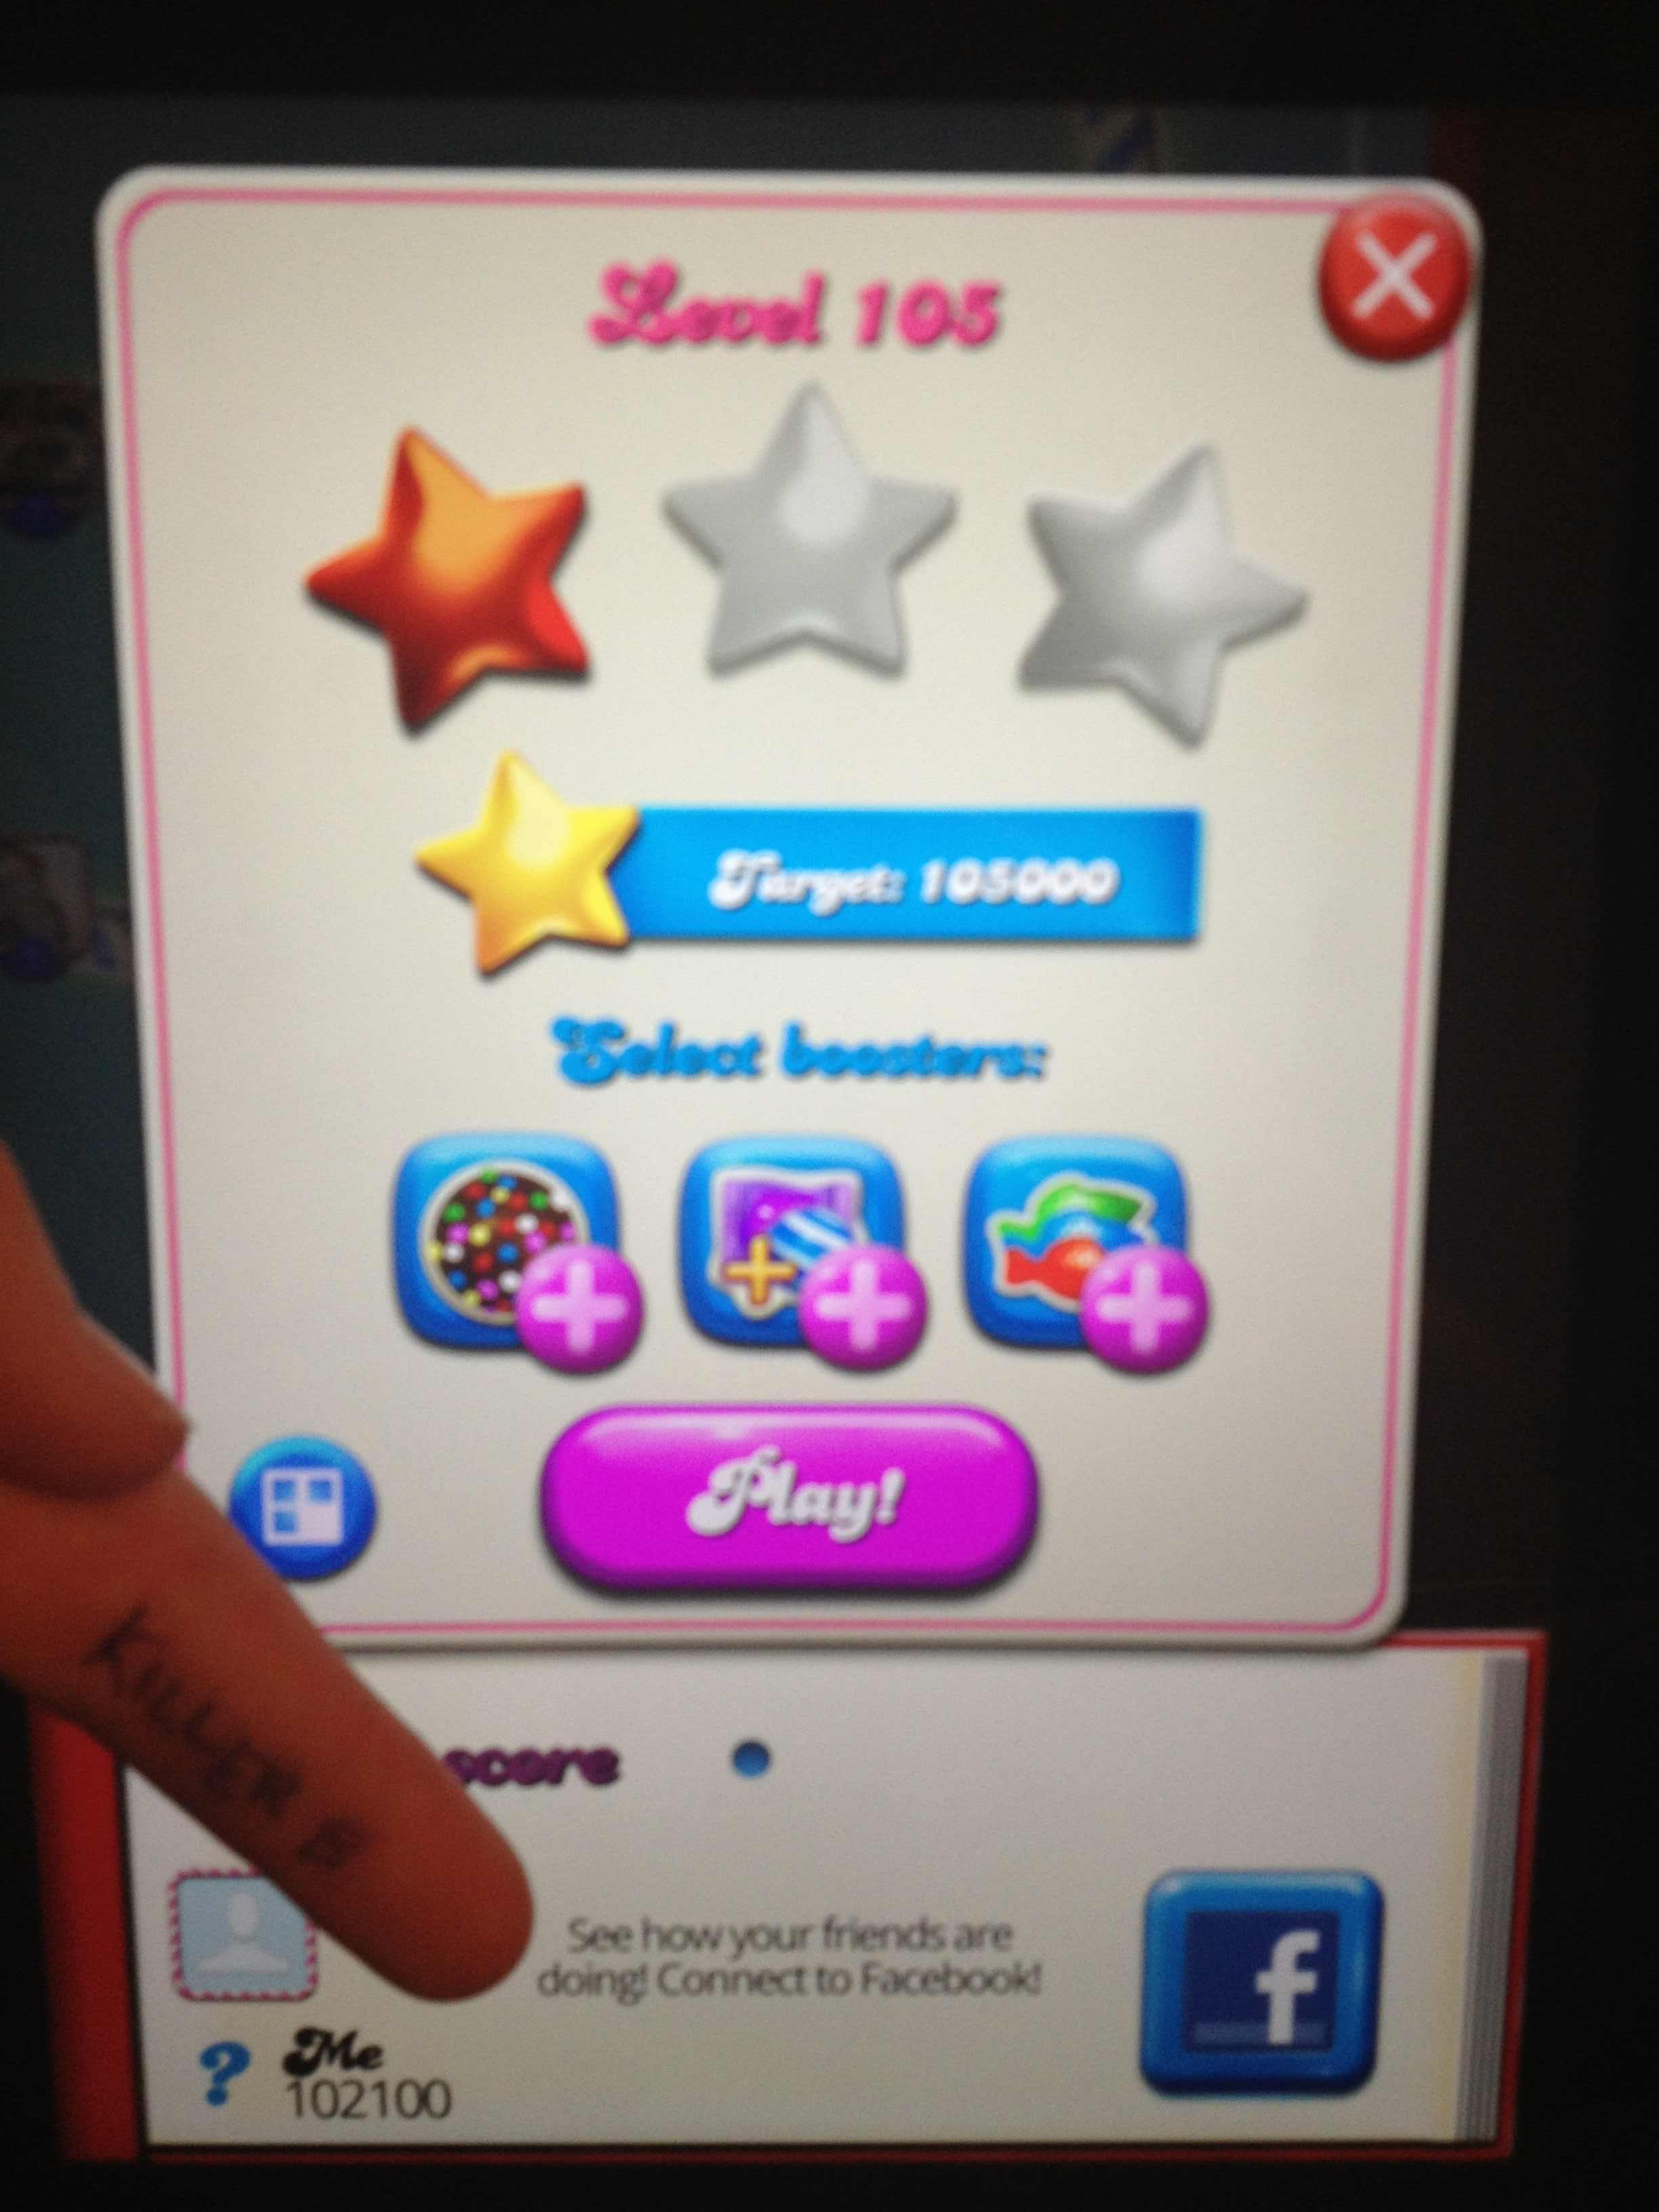 Candy Crush Saga: Level 105 102,100 points